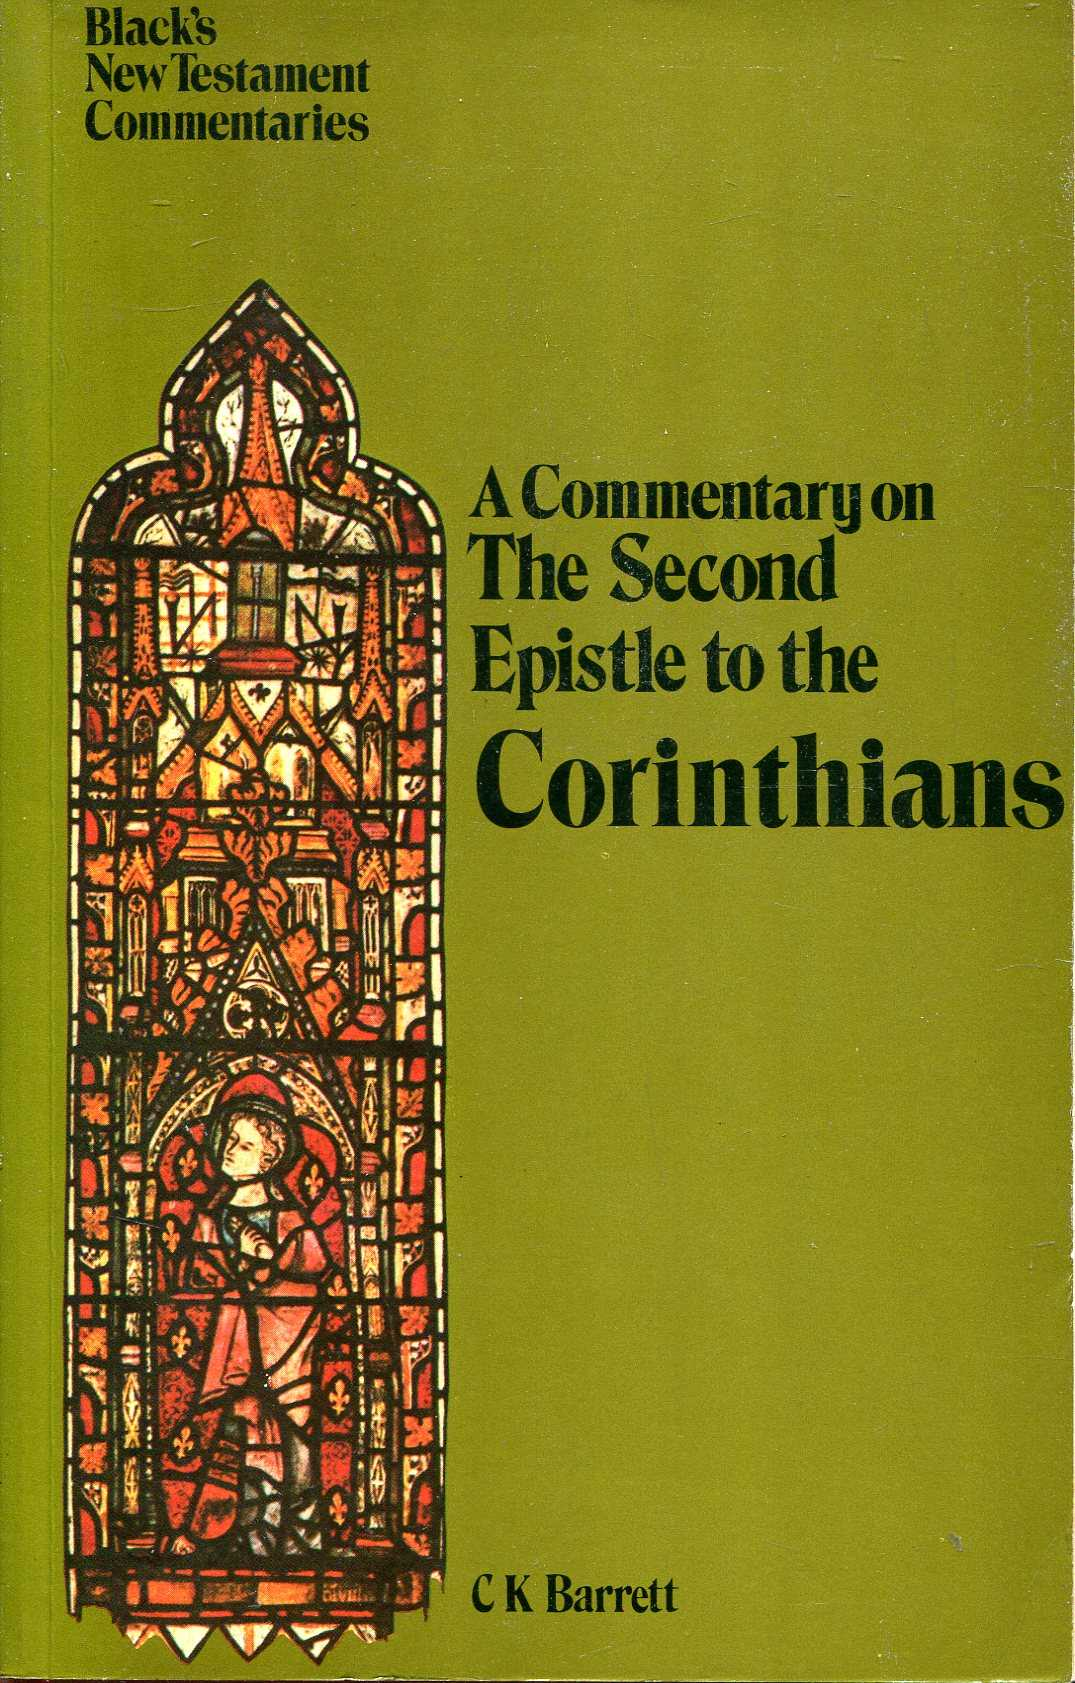 Image for A Commentary on The Second Epistle to the Corinthians